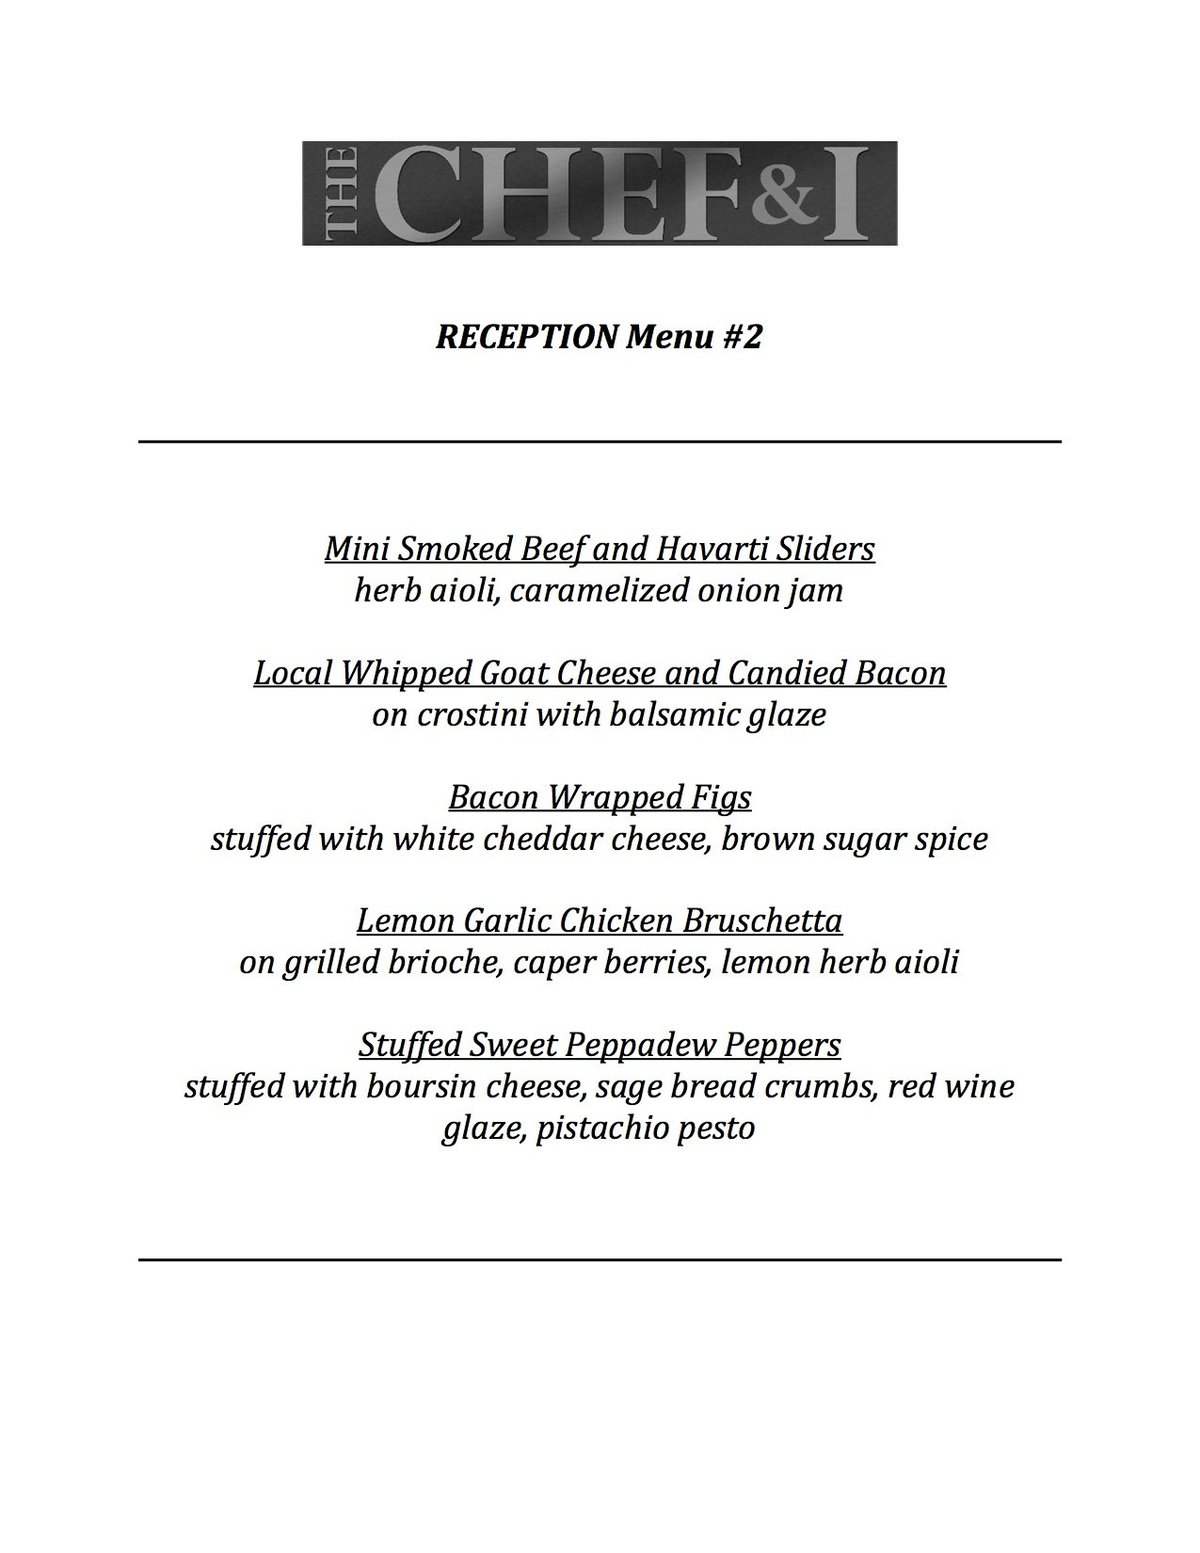 Reception Menu 2